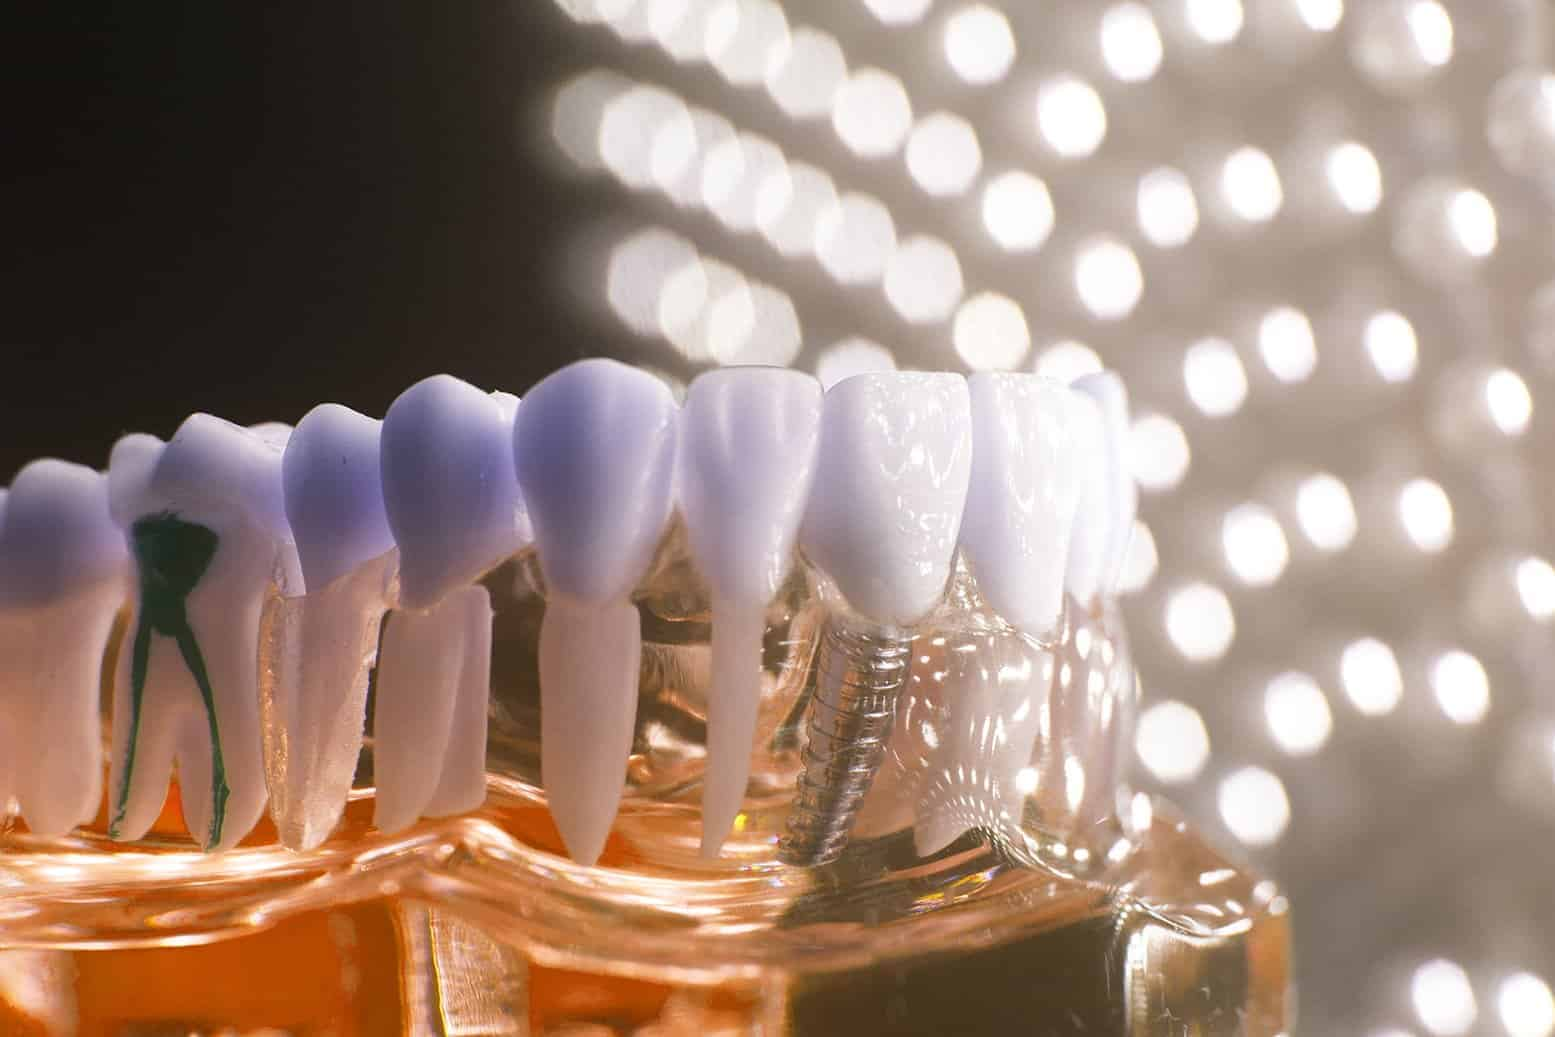 Four Reasons to Consider Single-Tooth Dental Implants